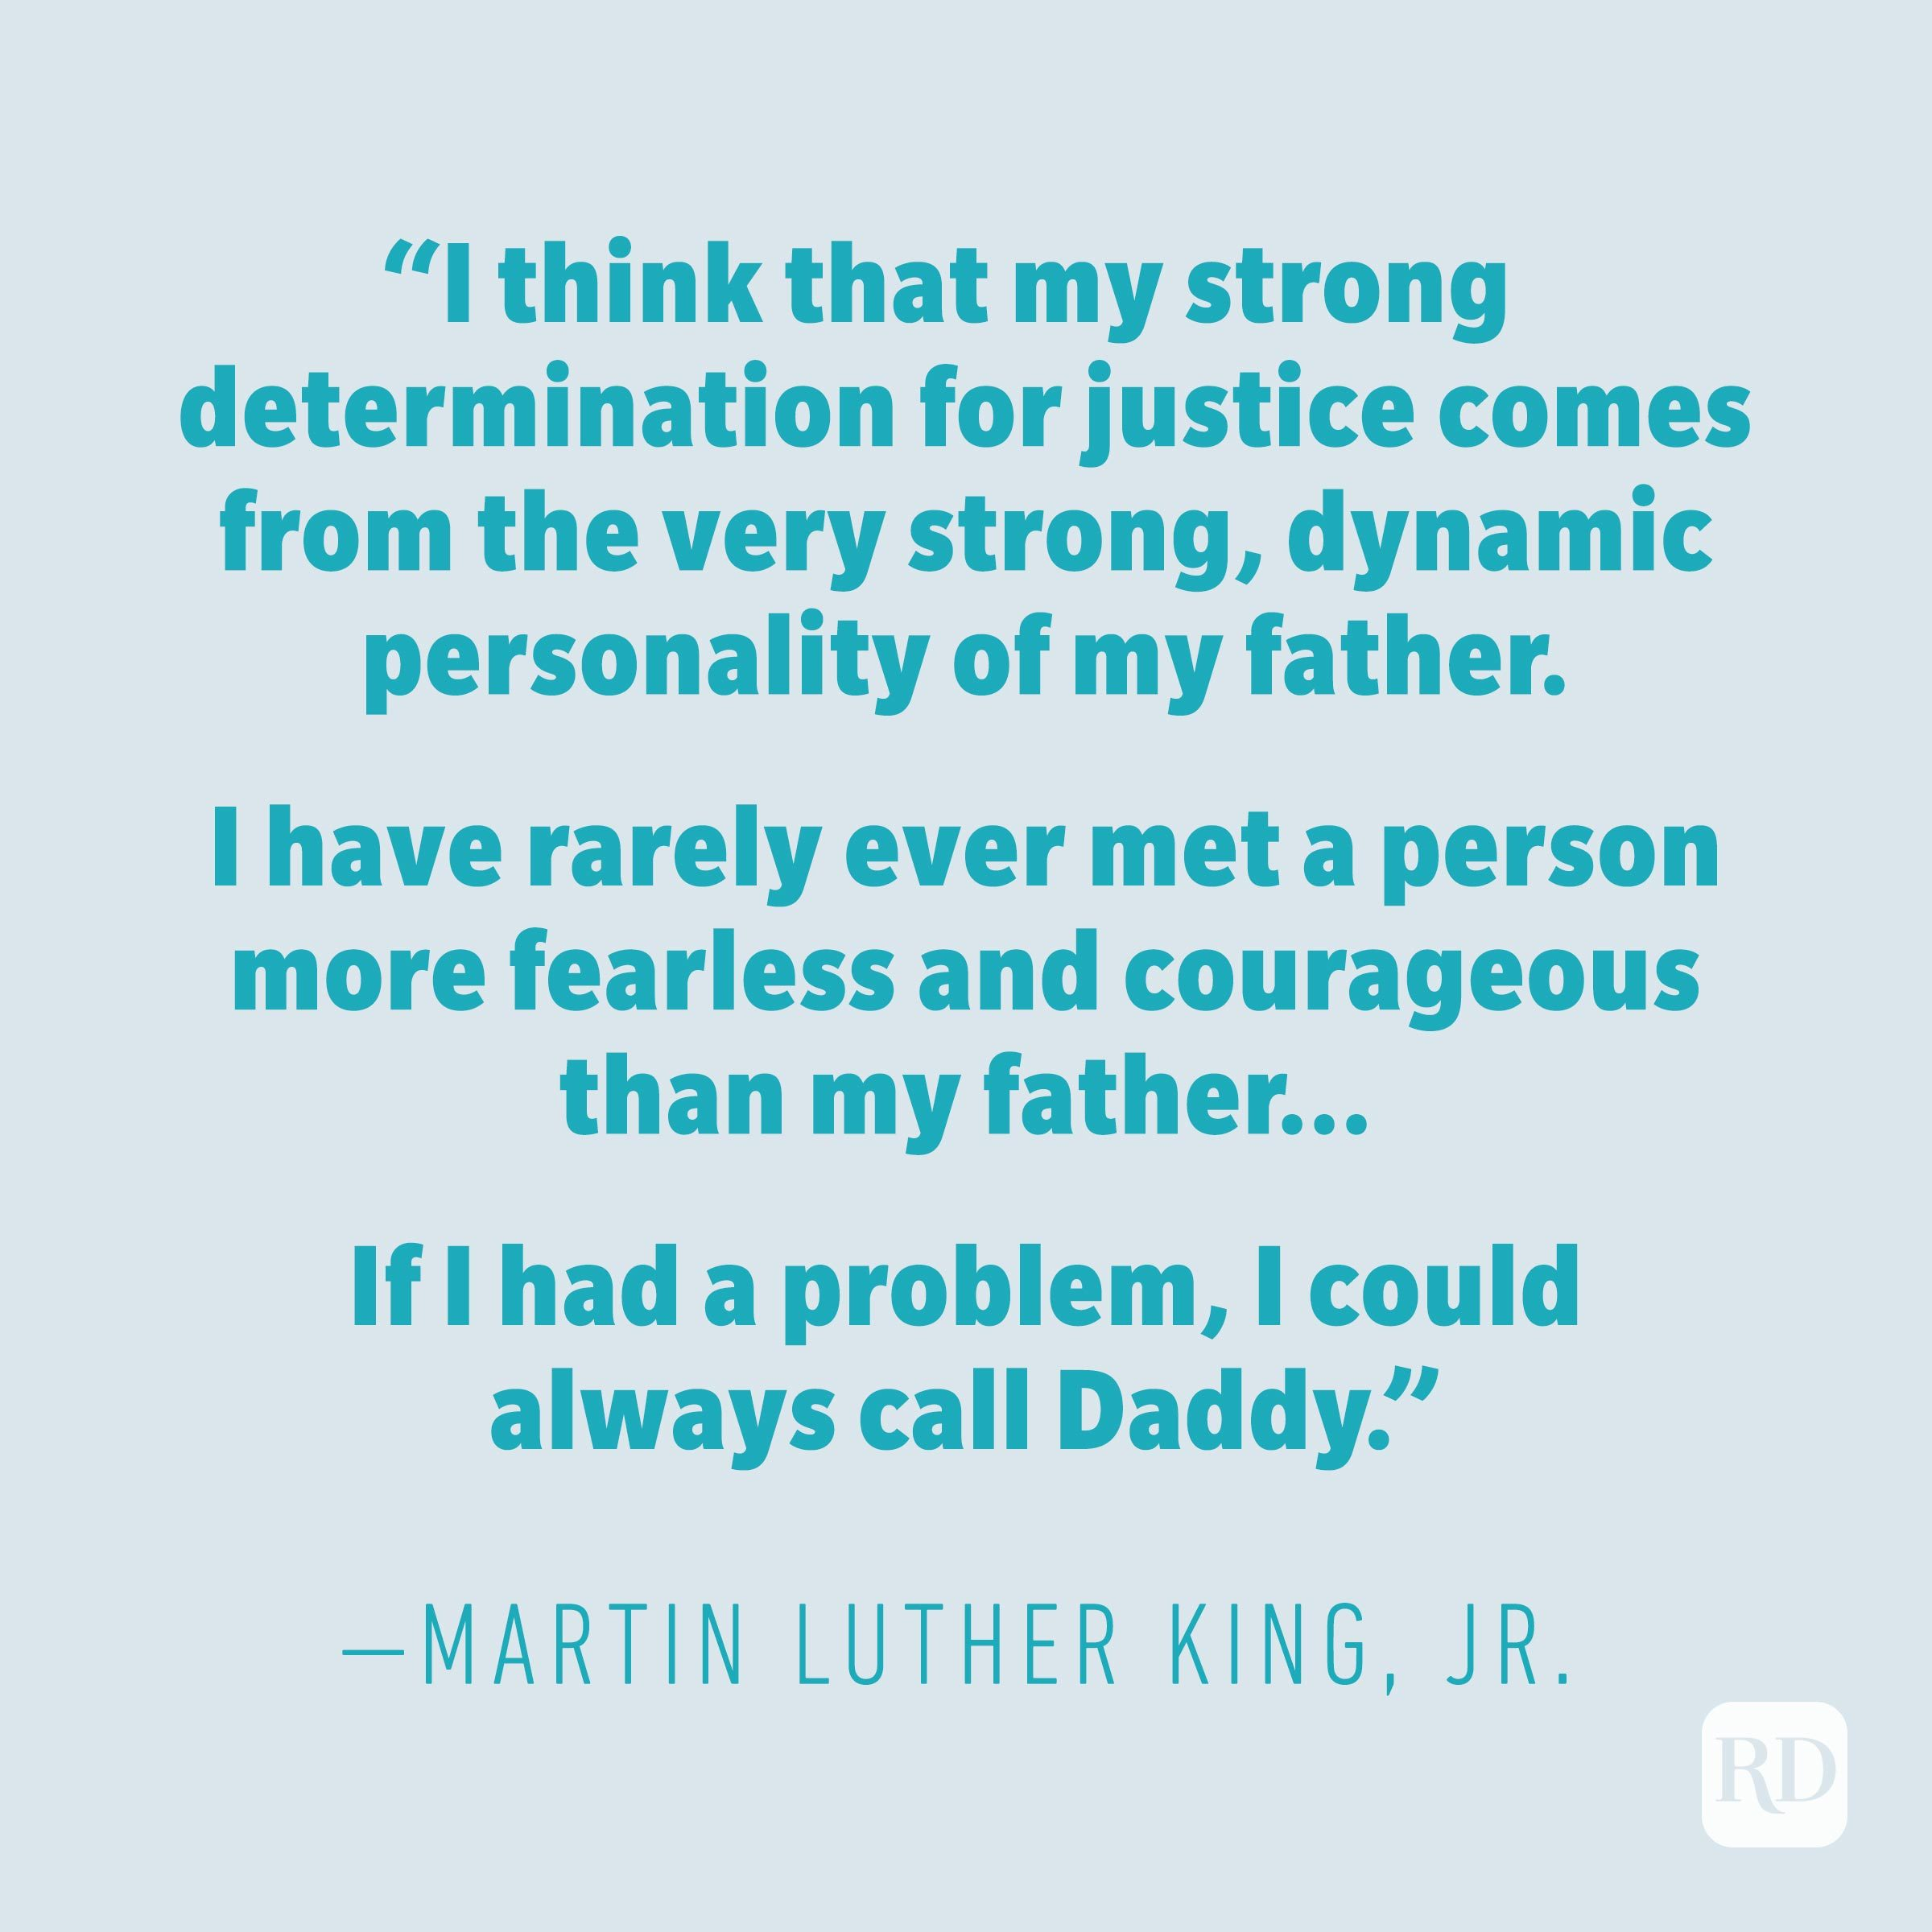 """I think that my strong determination for justice comes from the very strong, dynamic personality of my father. I have rarely ever met a person more fearless and courageous than my father. ... If I had a problem, I could always call Daddy."" —MARTIN LUTHER KING JR."